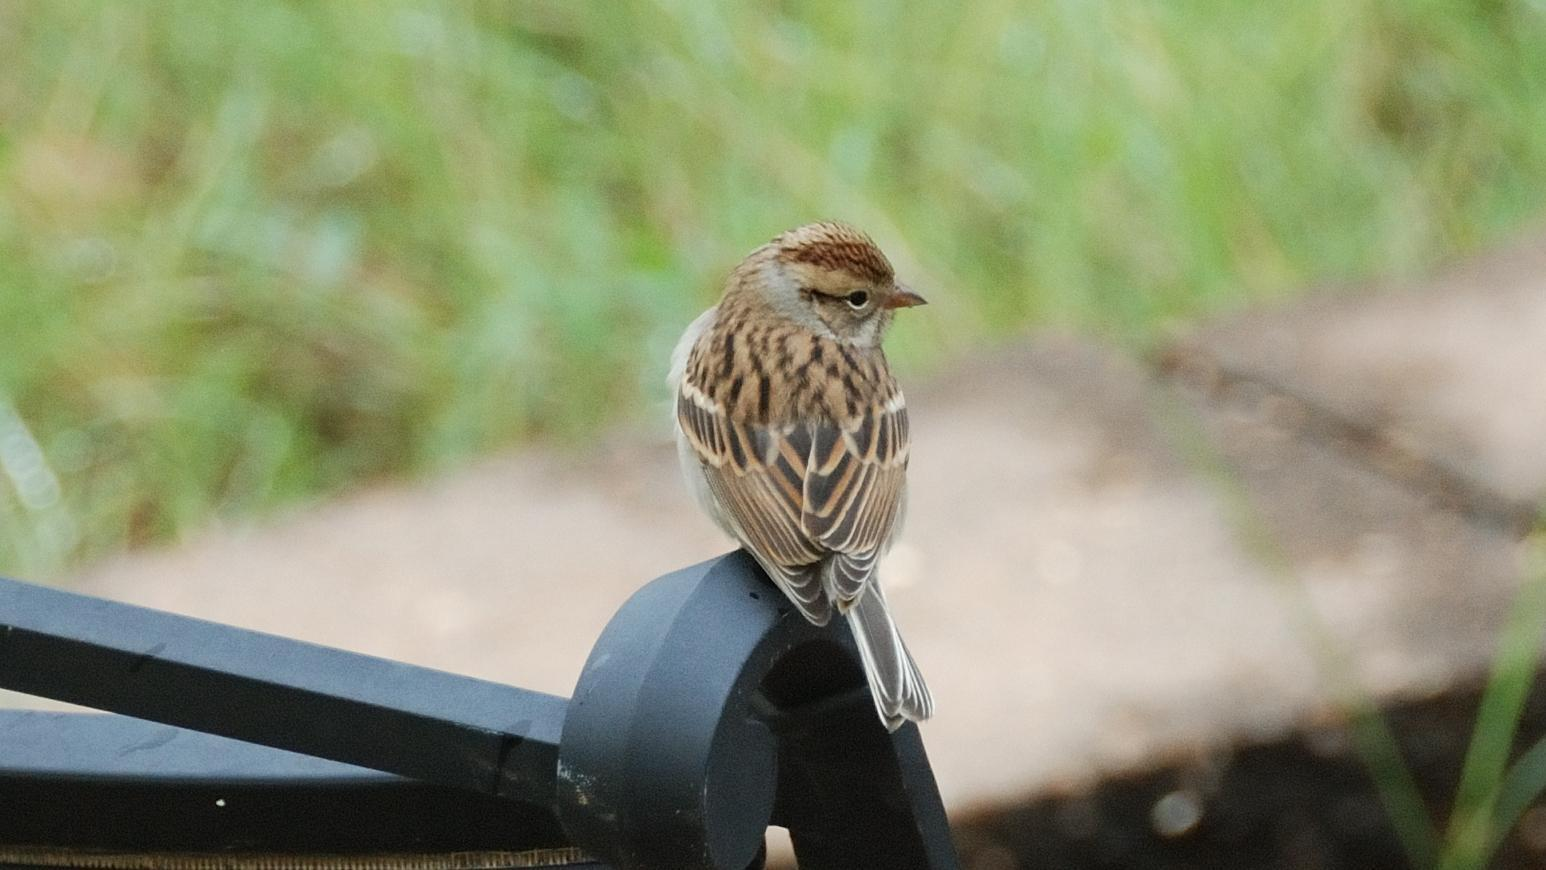 Chipping Sparrow Photo by RM Beck